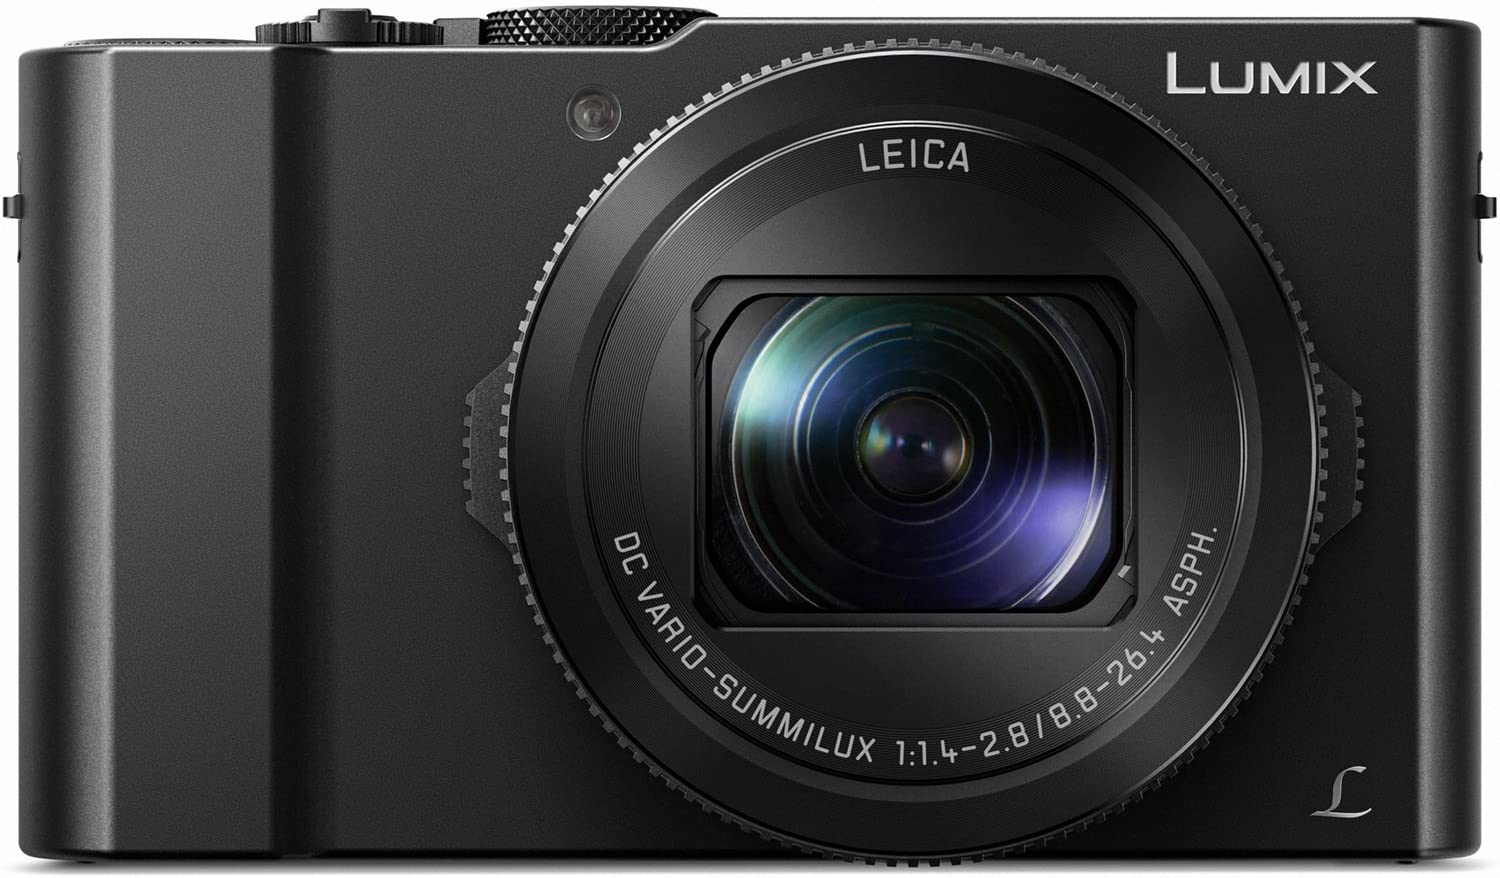 LEICA lens & Powerful Image Stabilization For Concert Photographers